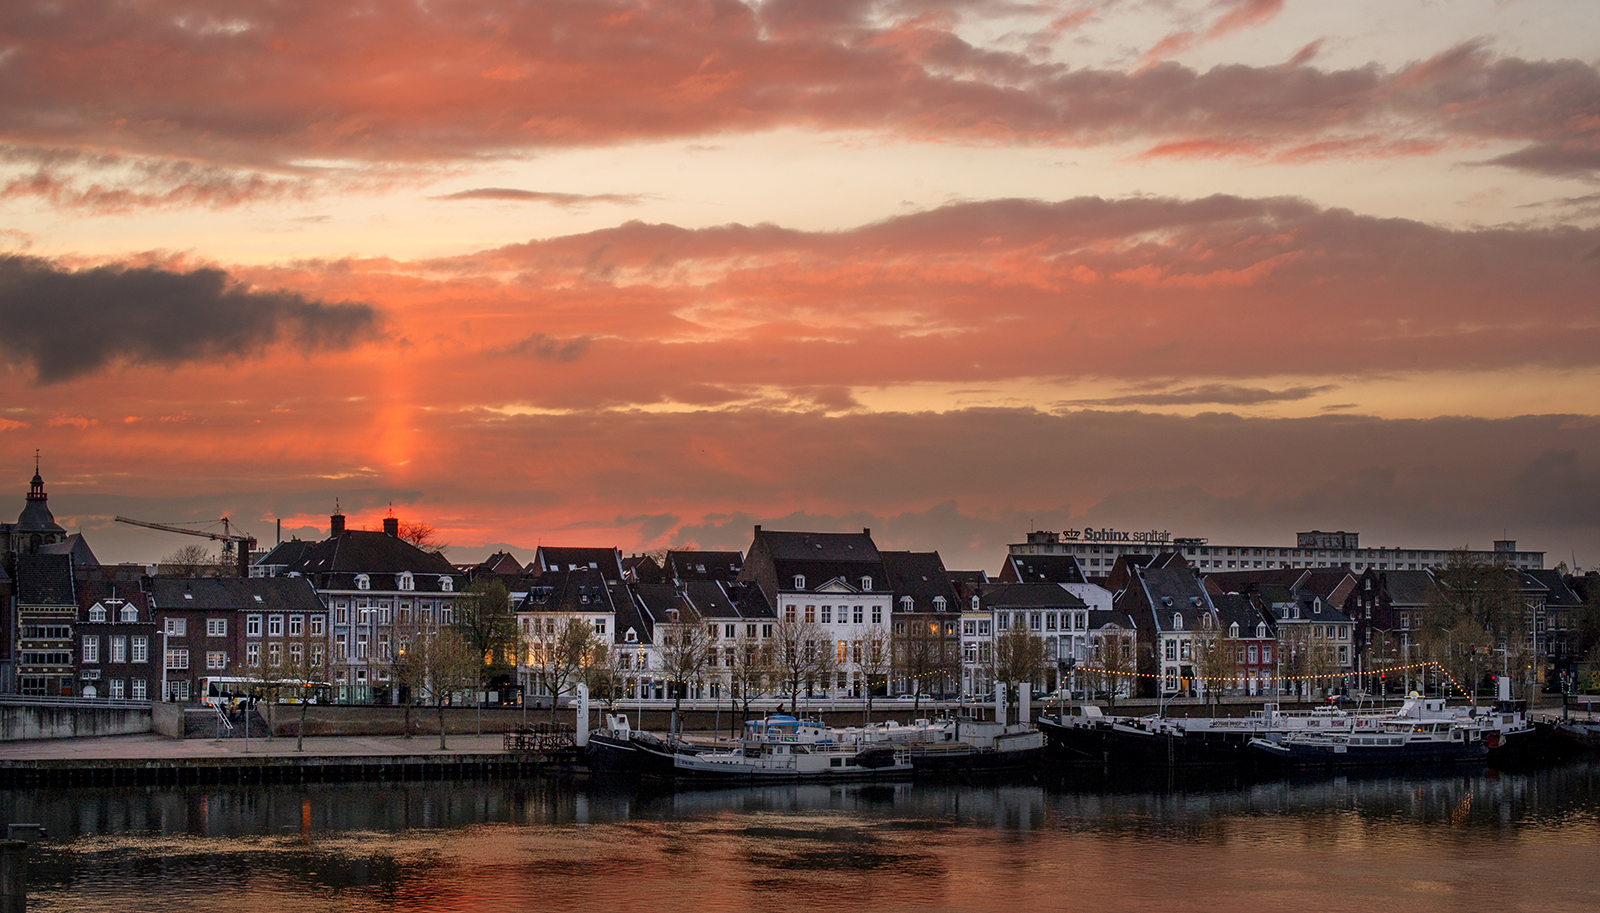 Maastricht skyline at the Maas river